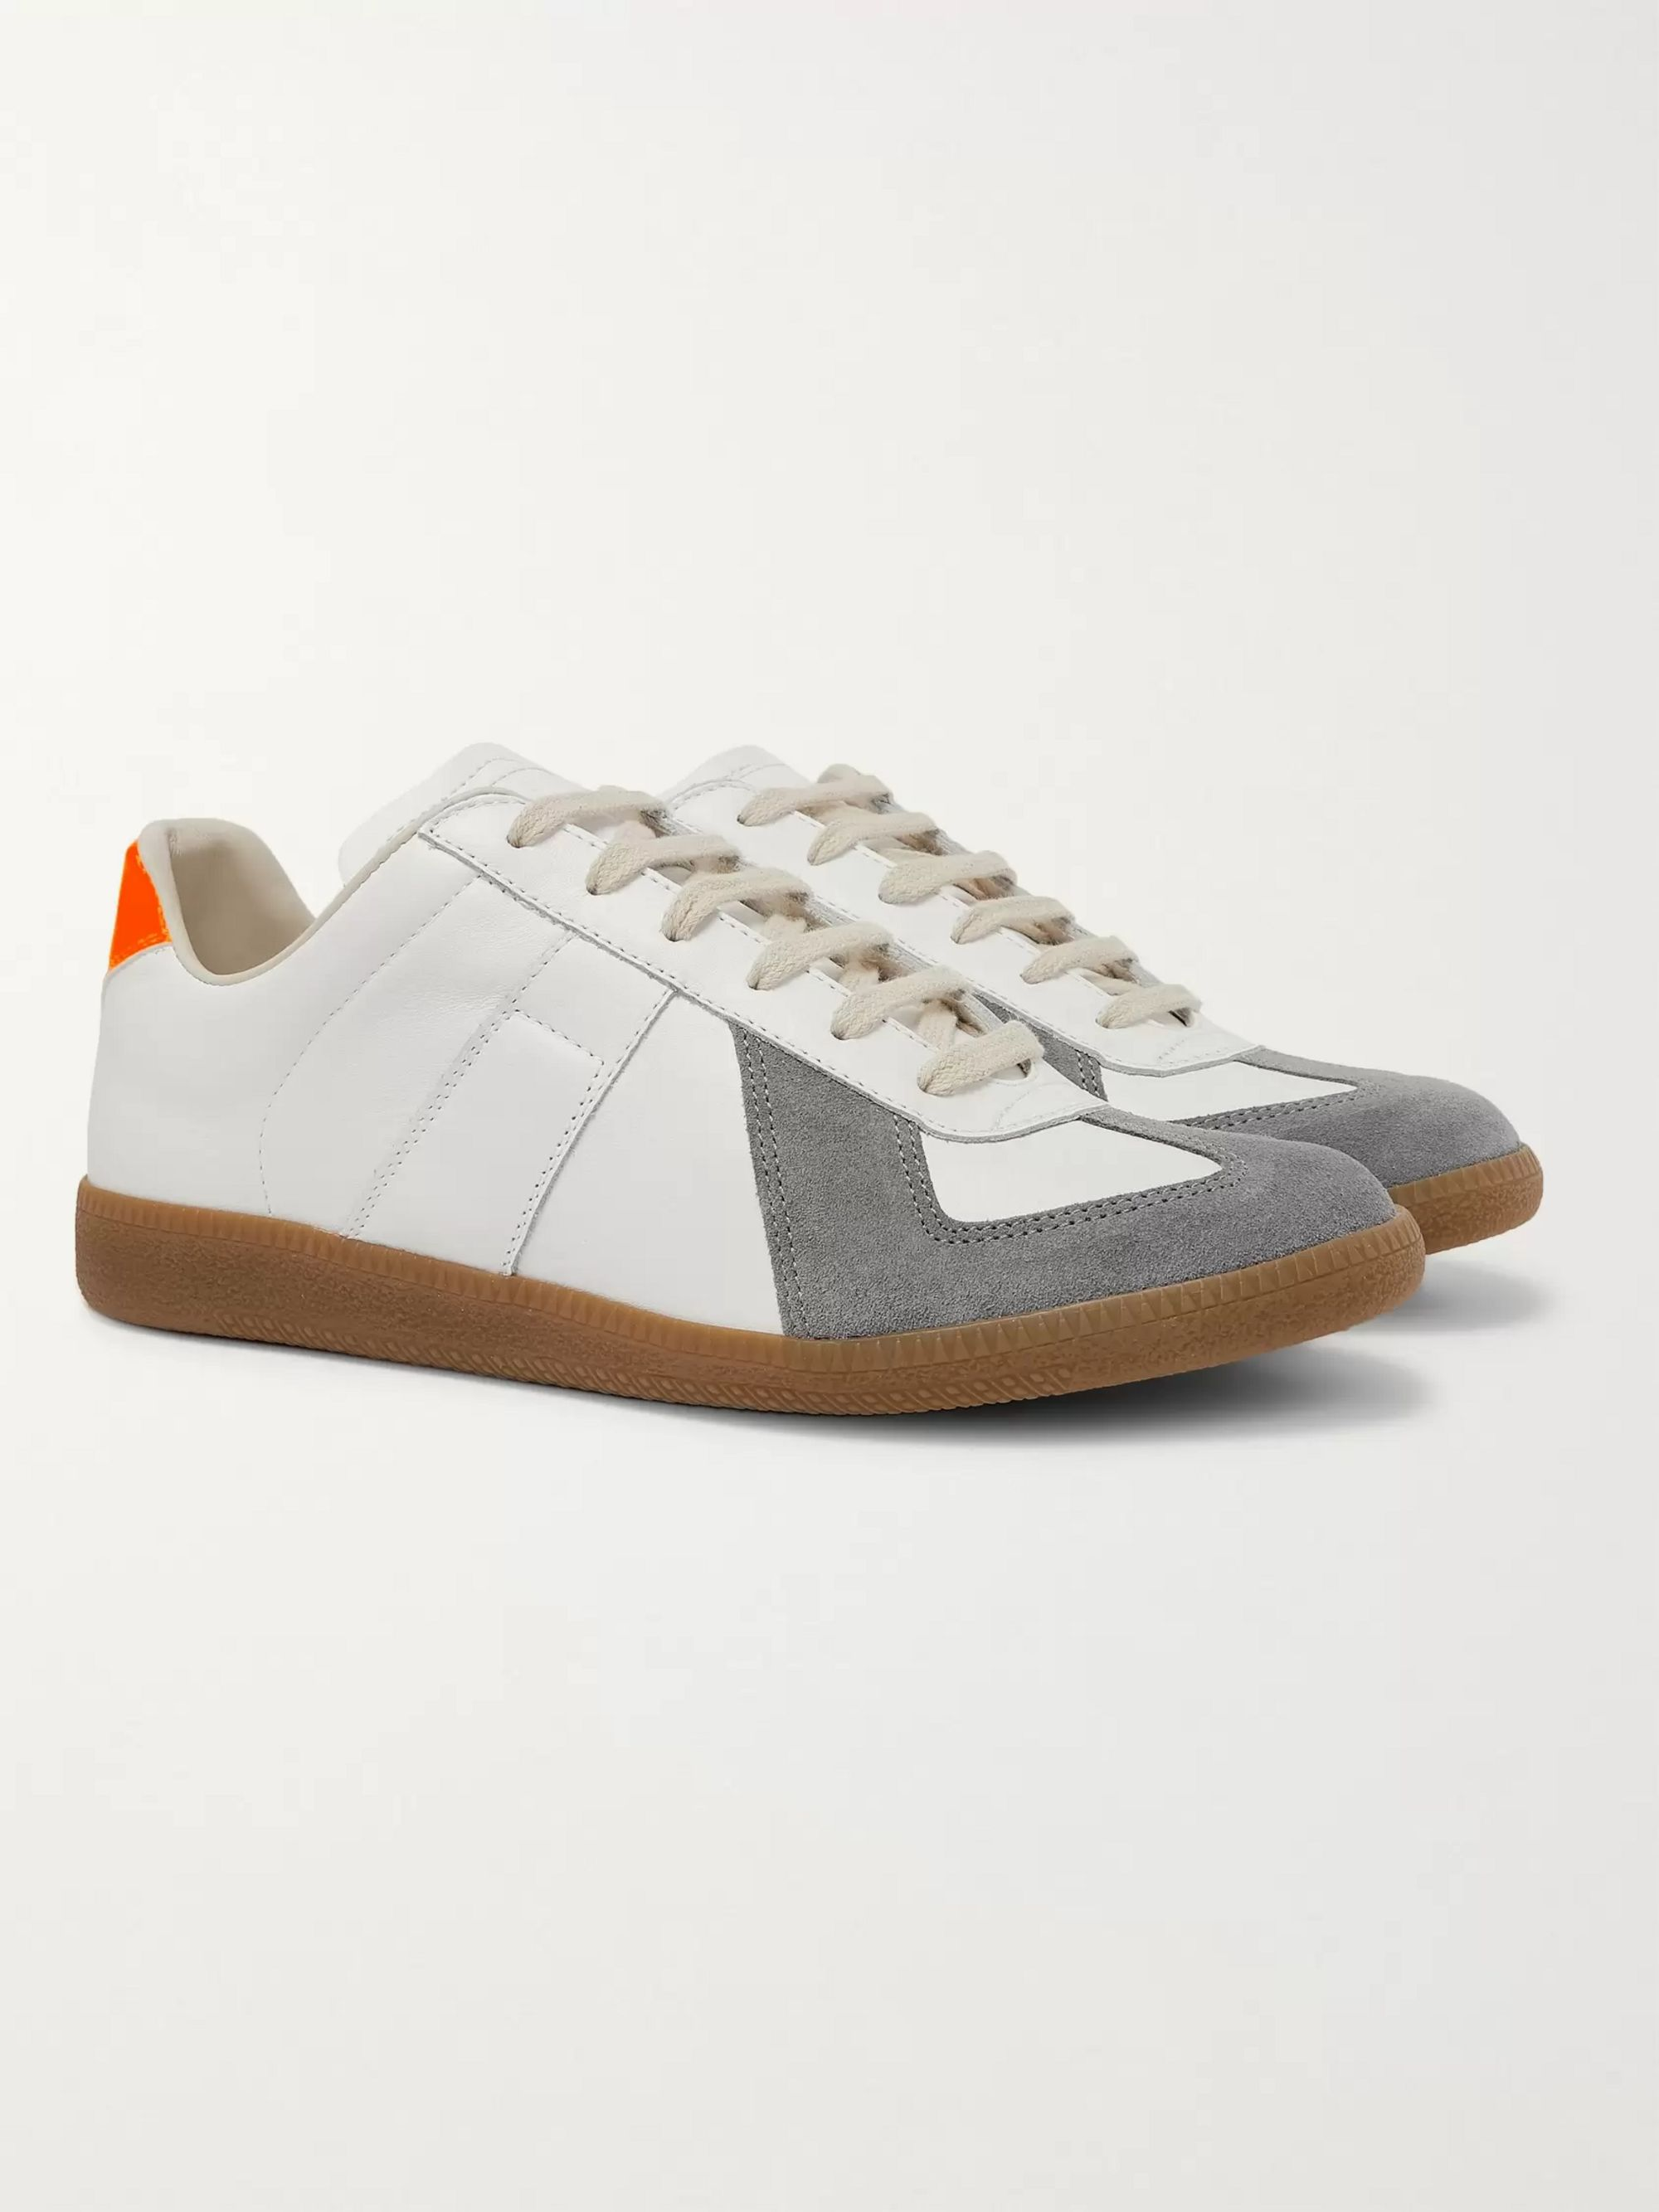 20 '70s Sneakers You Need To Know   Complex